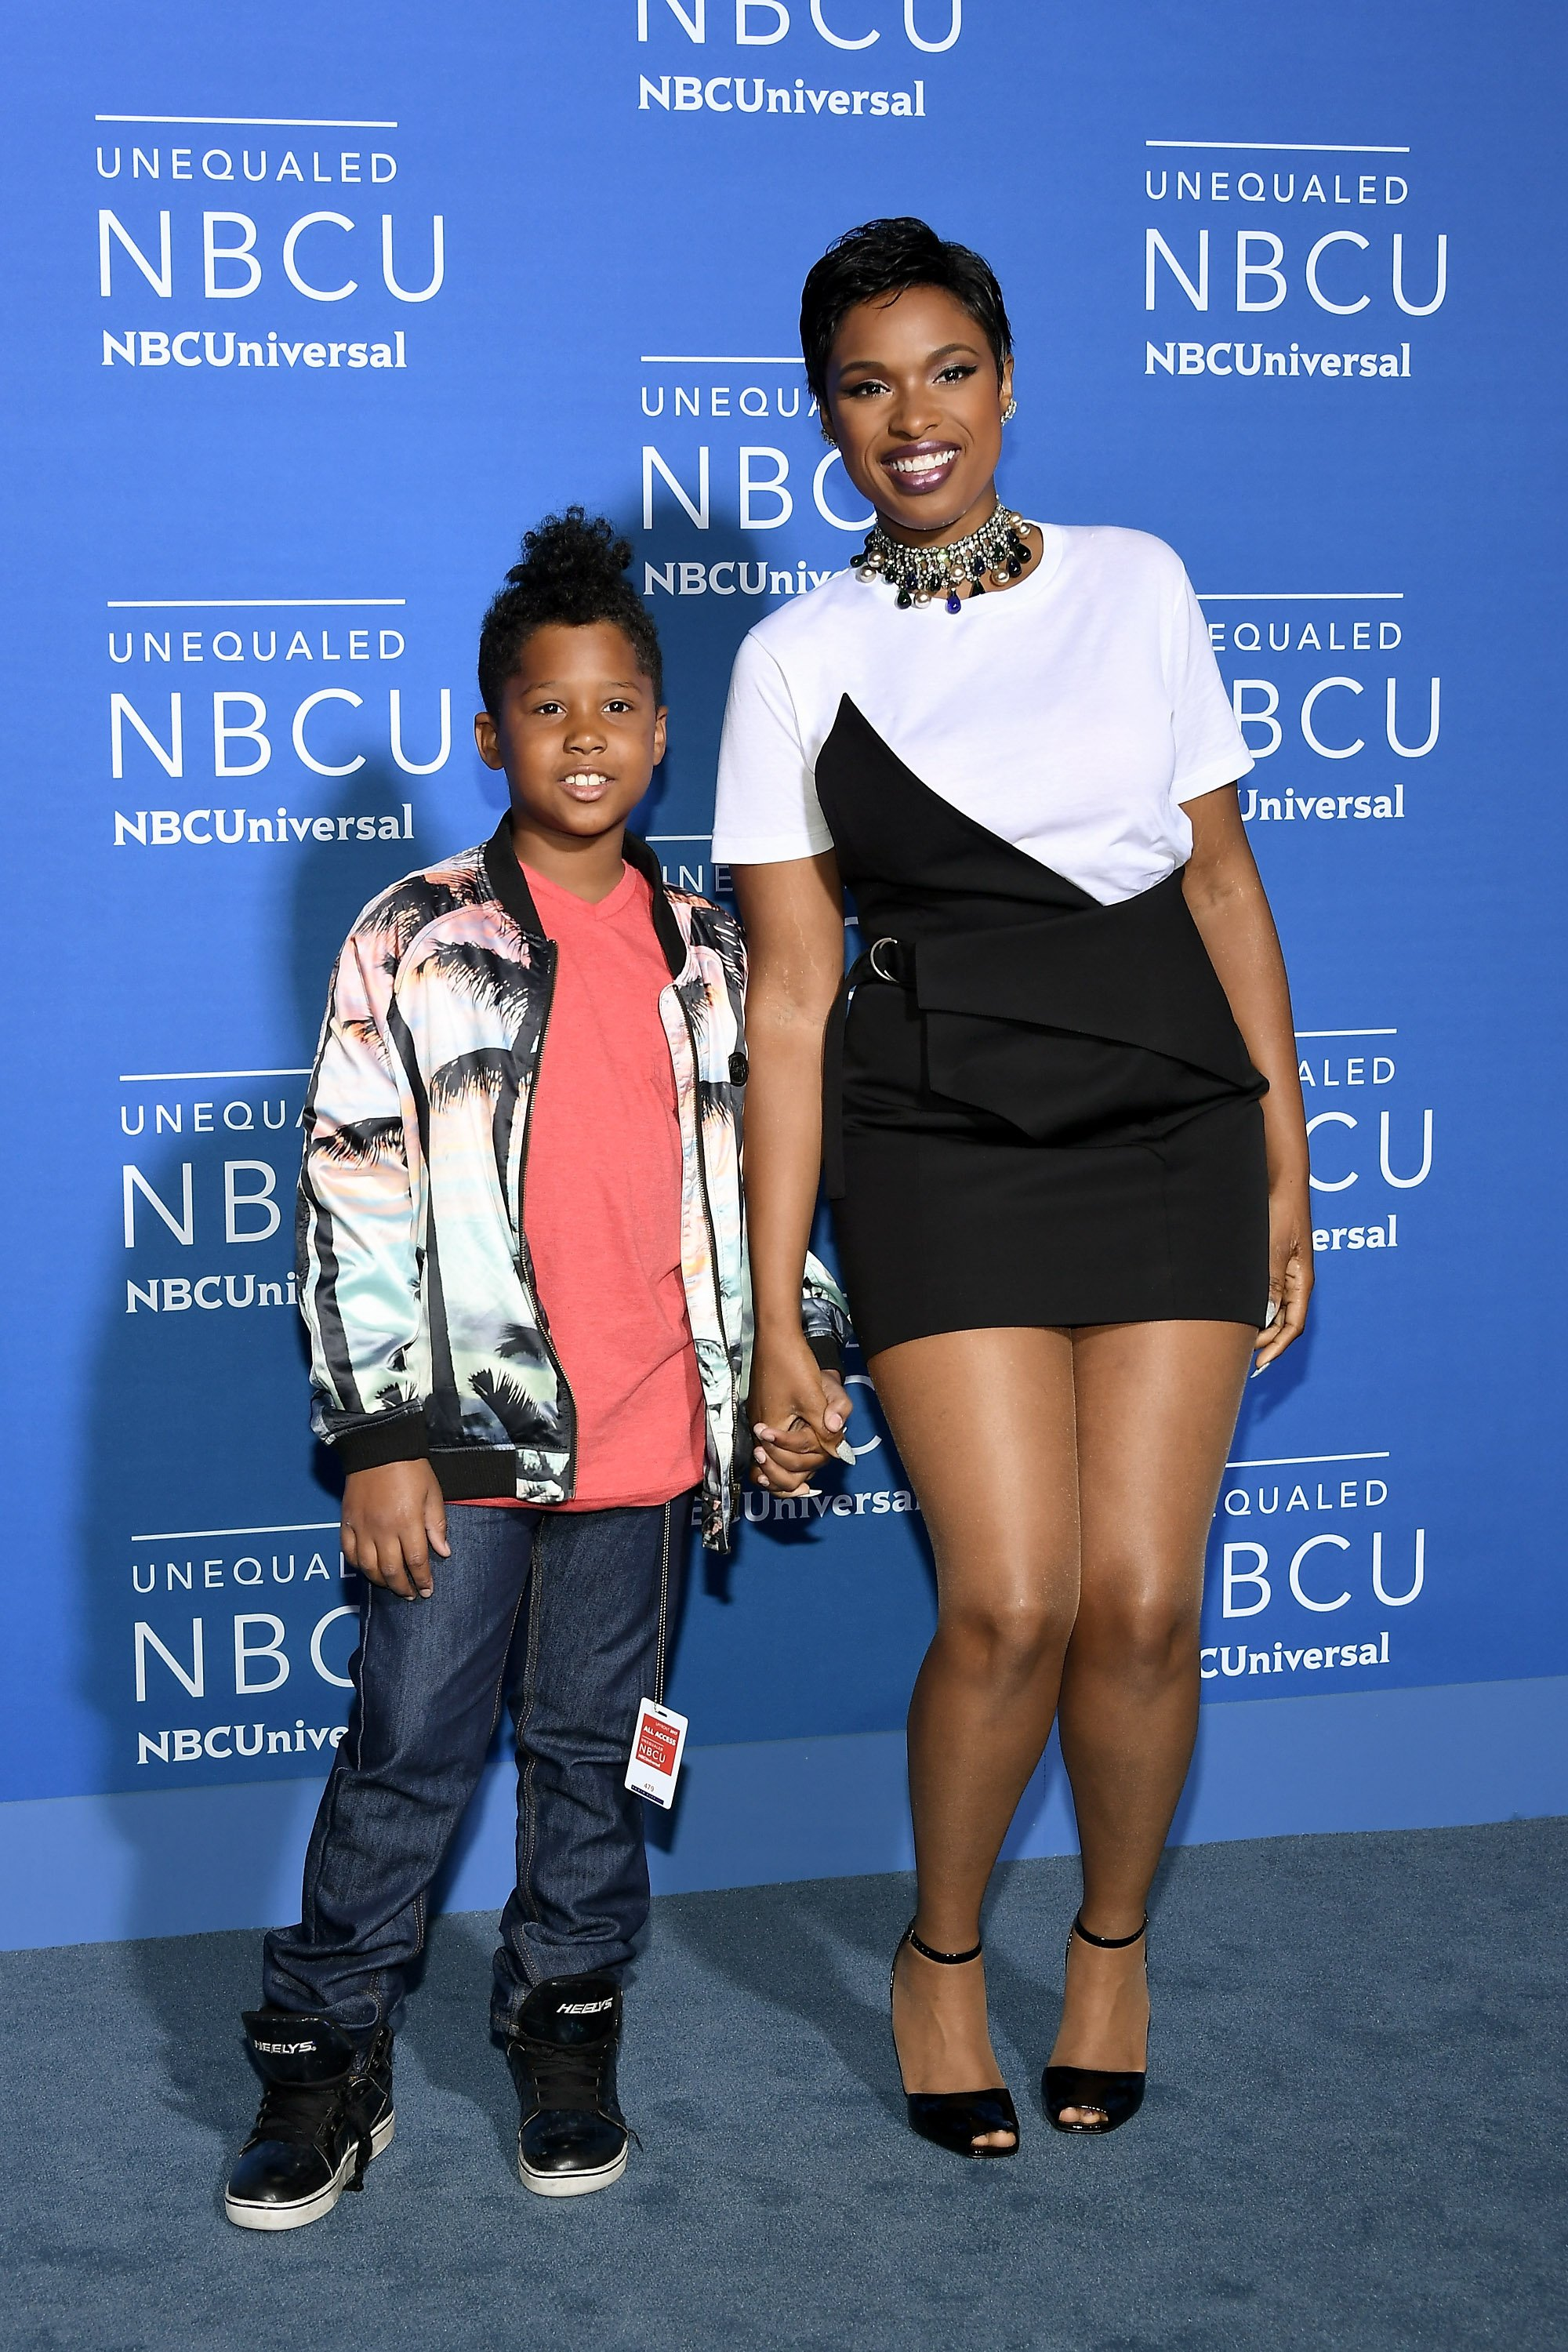 Jennifer Hudson and son David Otunga Jr. at the 2017 NBCUniversal Upfront on May 15, 2017 in New York City | Photo: Getty Images